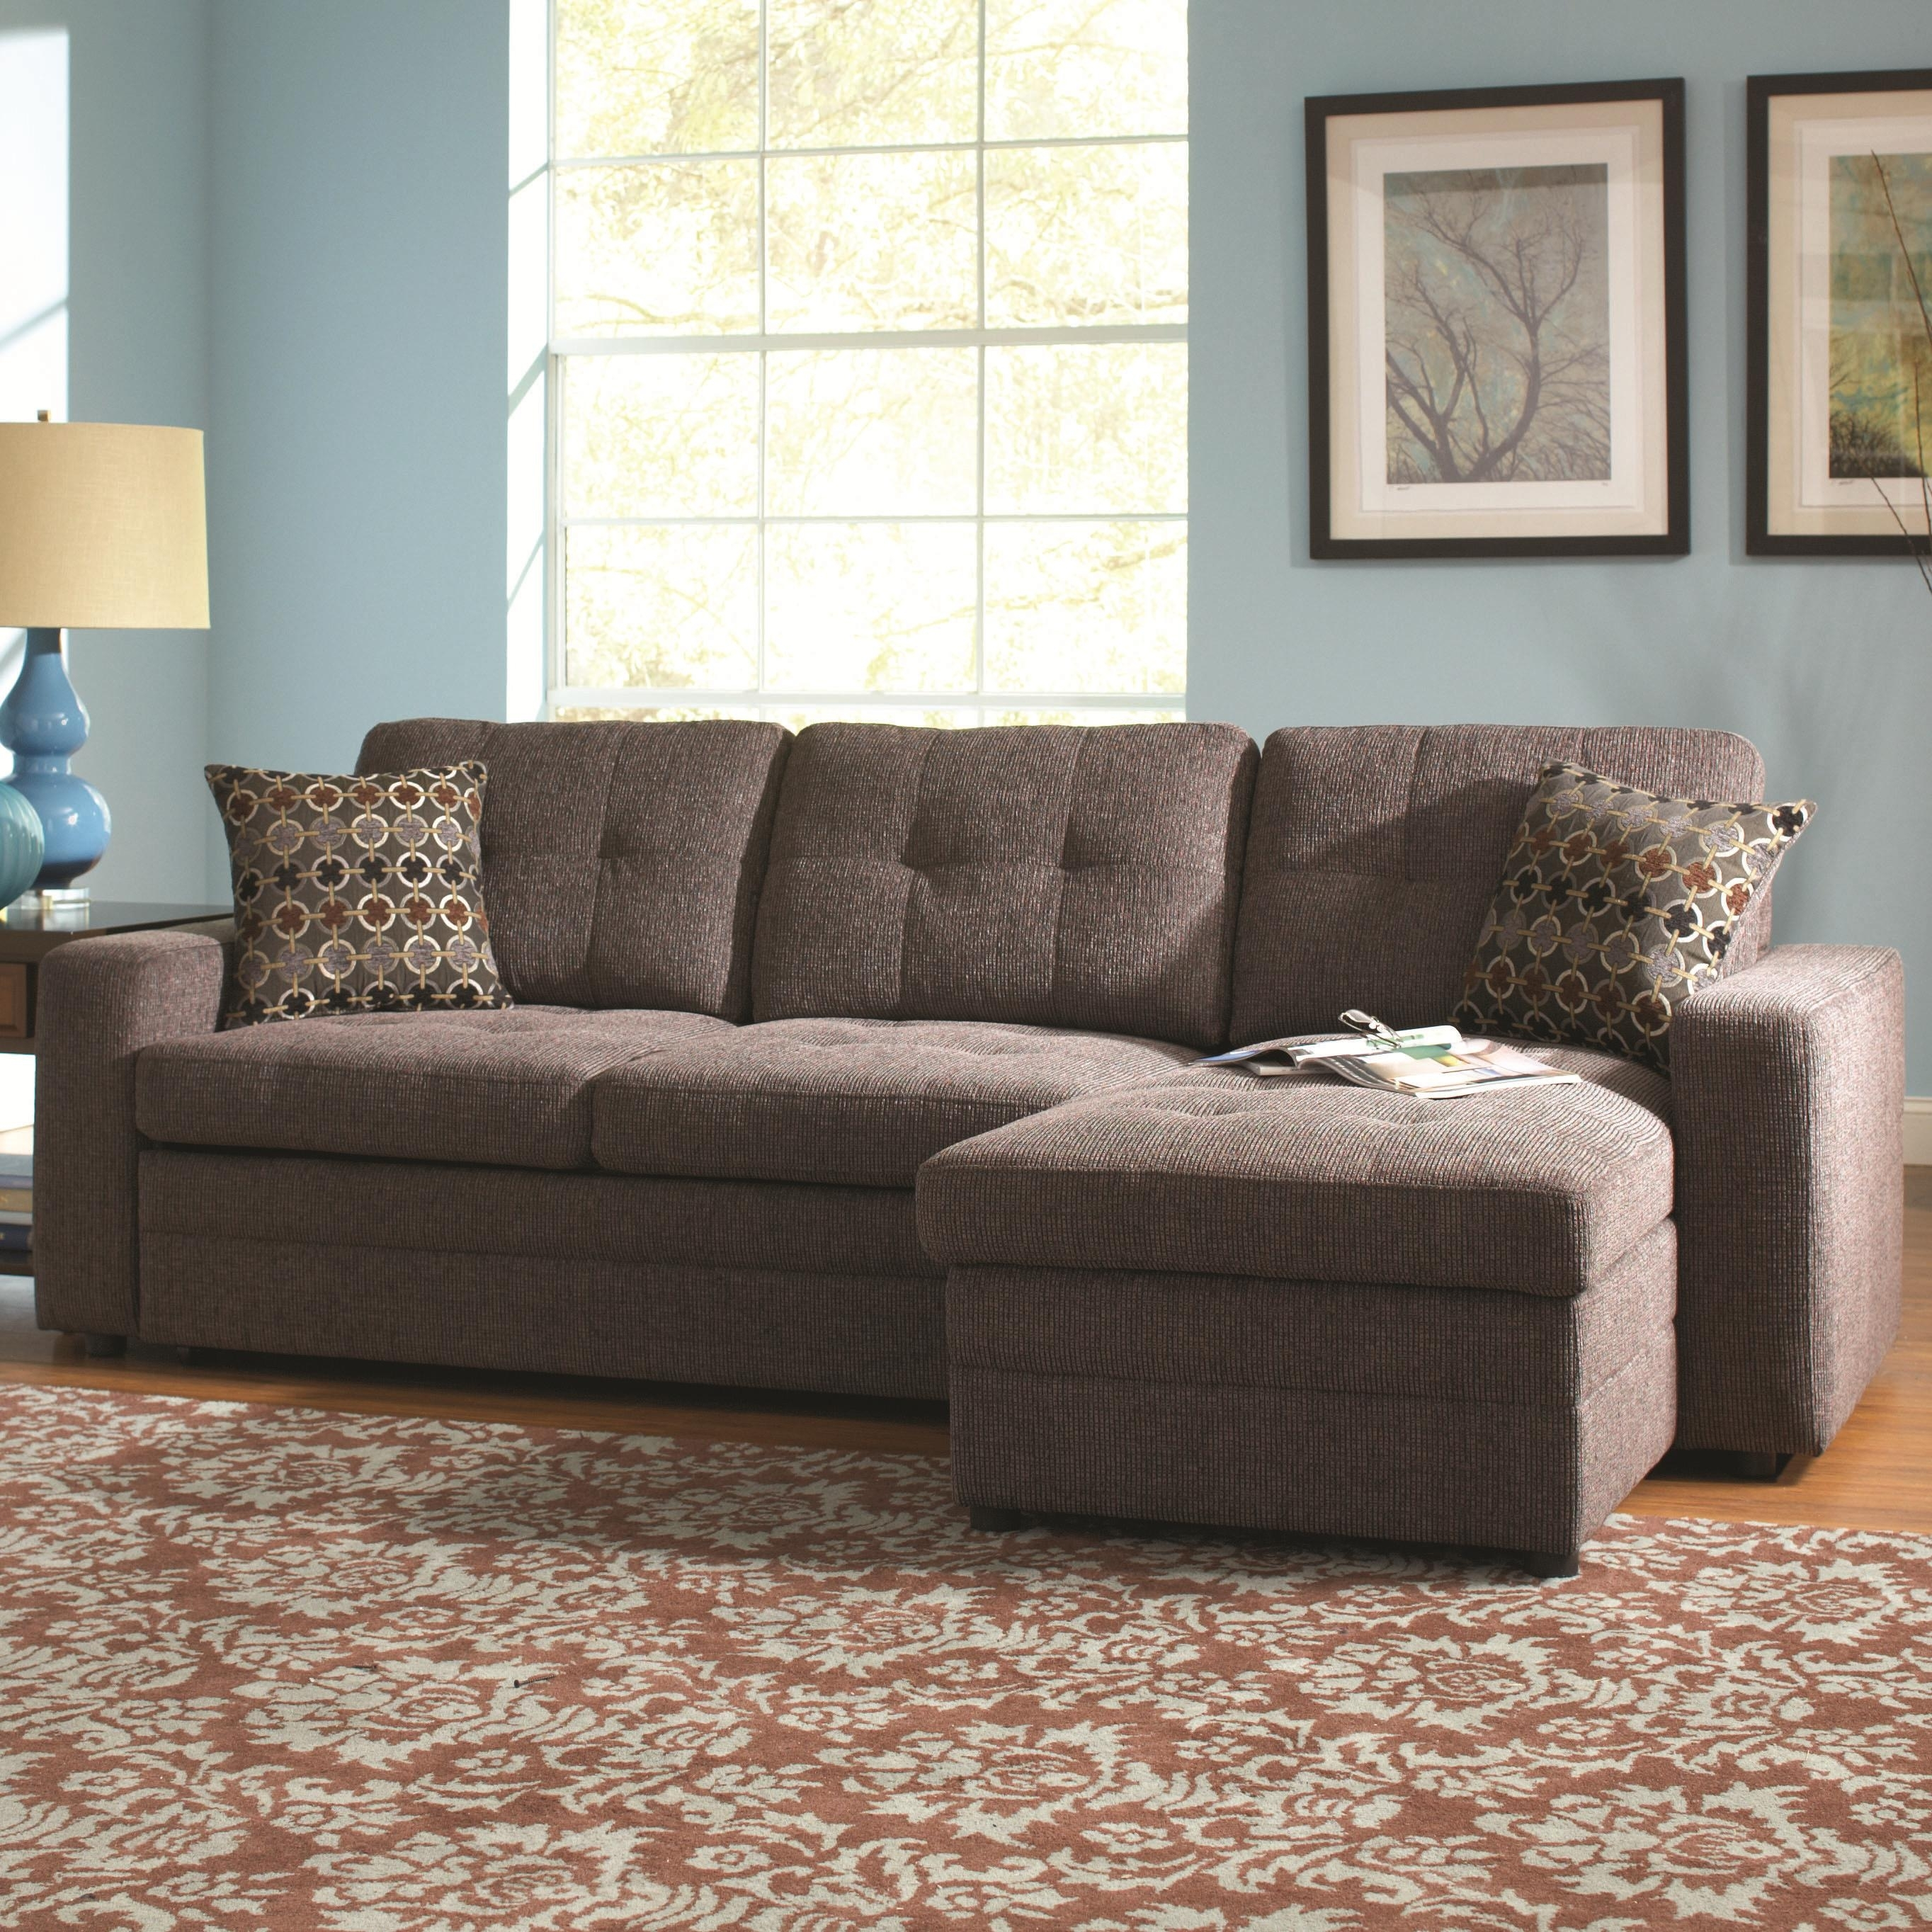 Coaster Gus Sectional Sofa With Tufts, Storage, And Pull Out Bed Inside Eugene Oregon Sectional Sofas (View 10 of 10)